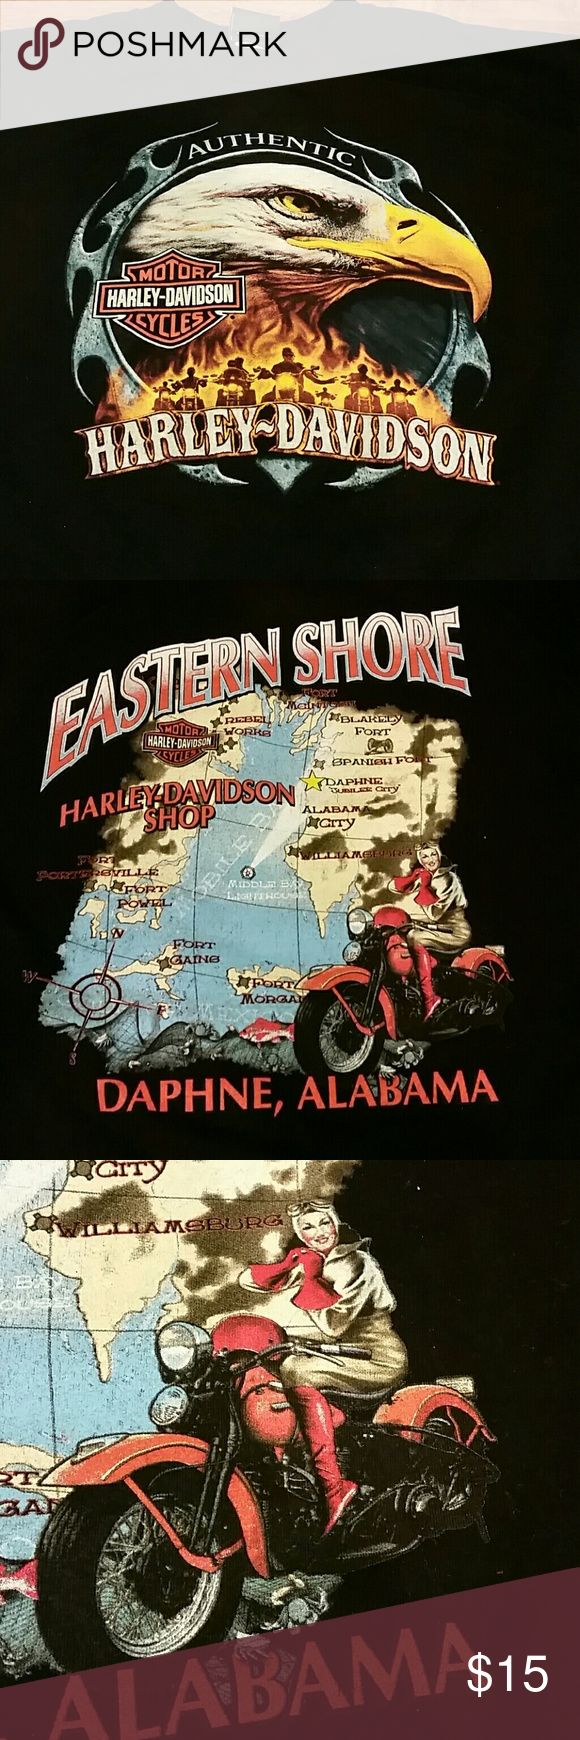 Harley-Davidson Alabama Tee Excellent condition.  Harley-Davidson shop in Daphne, Alabama. Eastern Shore Harley-Davidson Shirts Tees - Short Sleeve